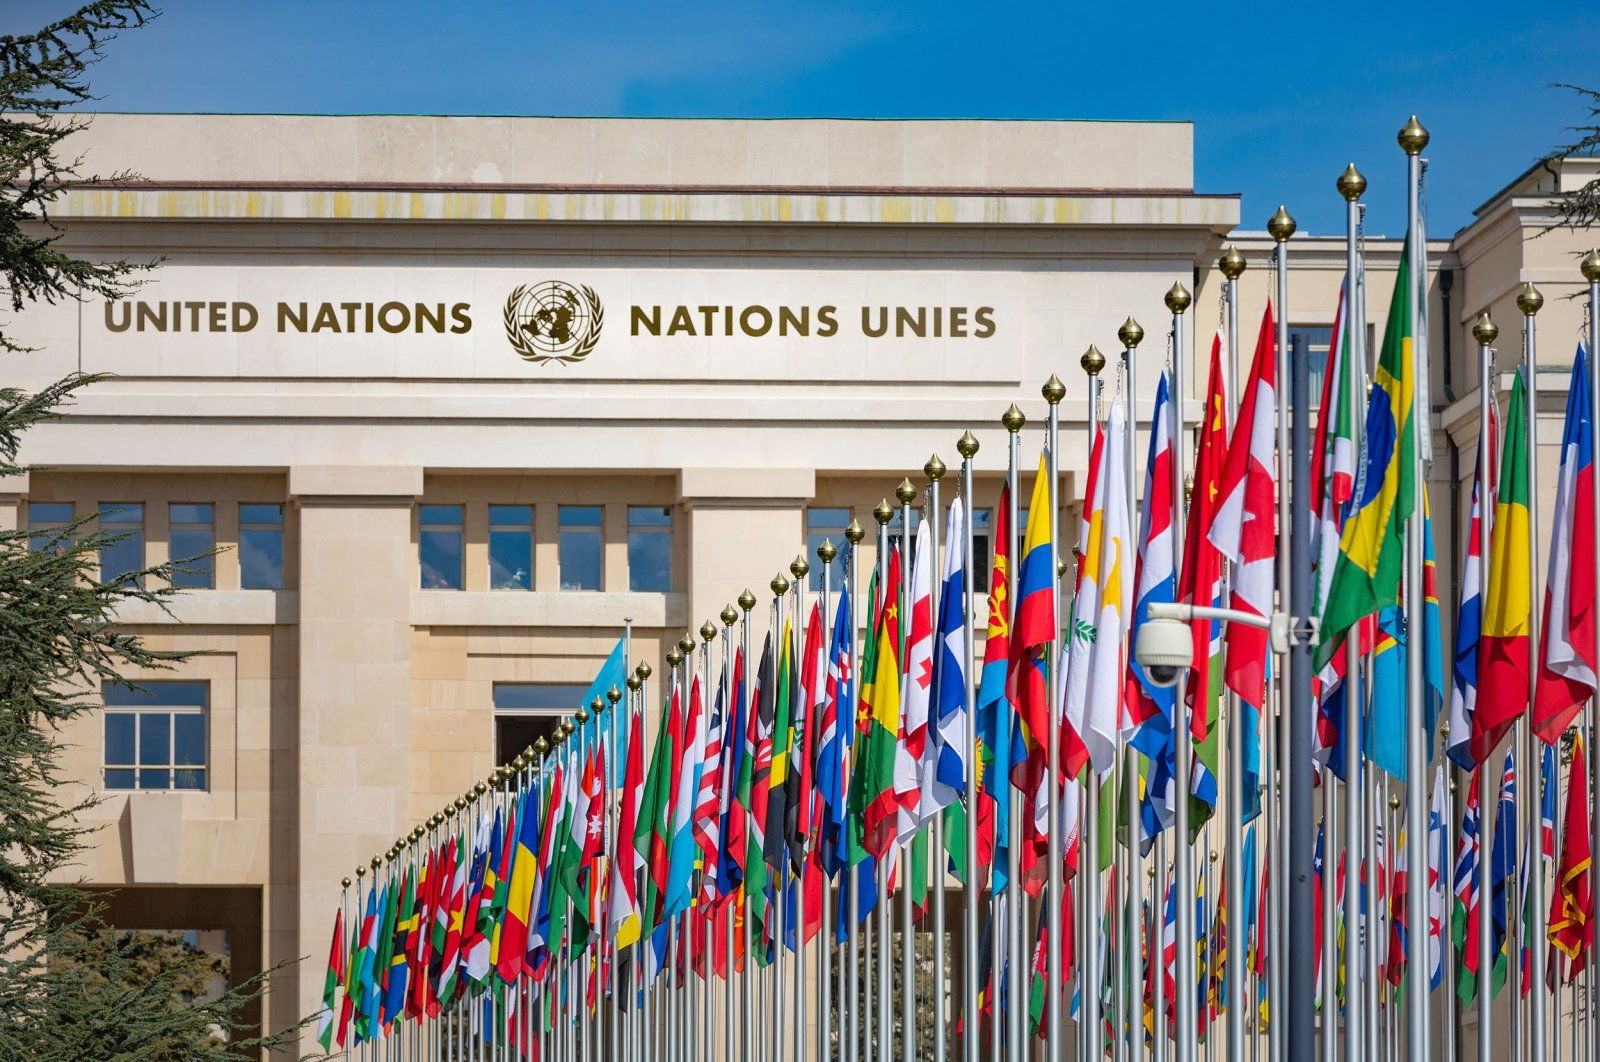 Flags of various countries are seen outside the building of the United Nations, Geneva, Switzerland. (Shutterstock Photo)